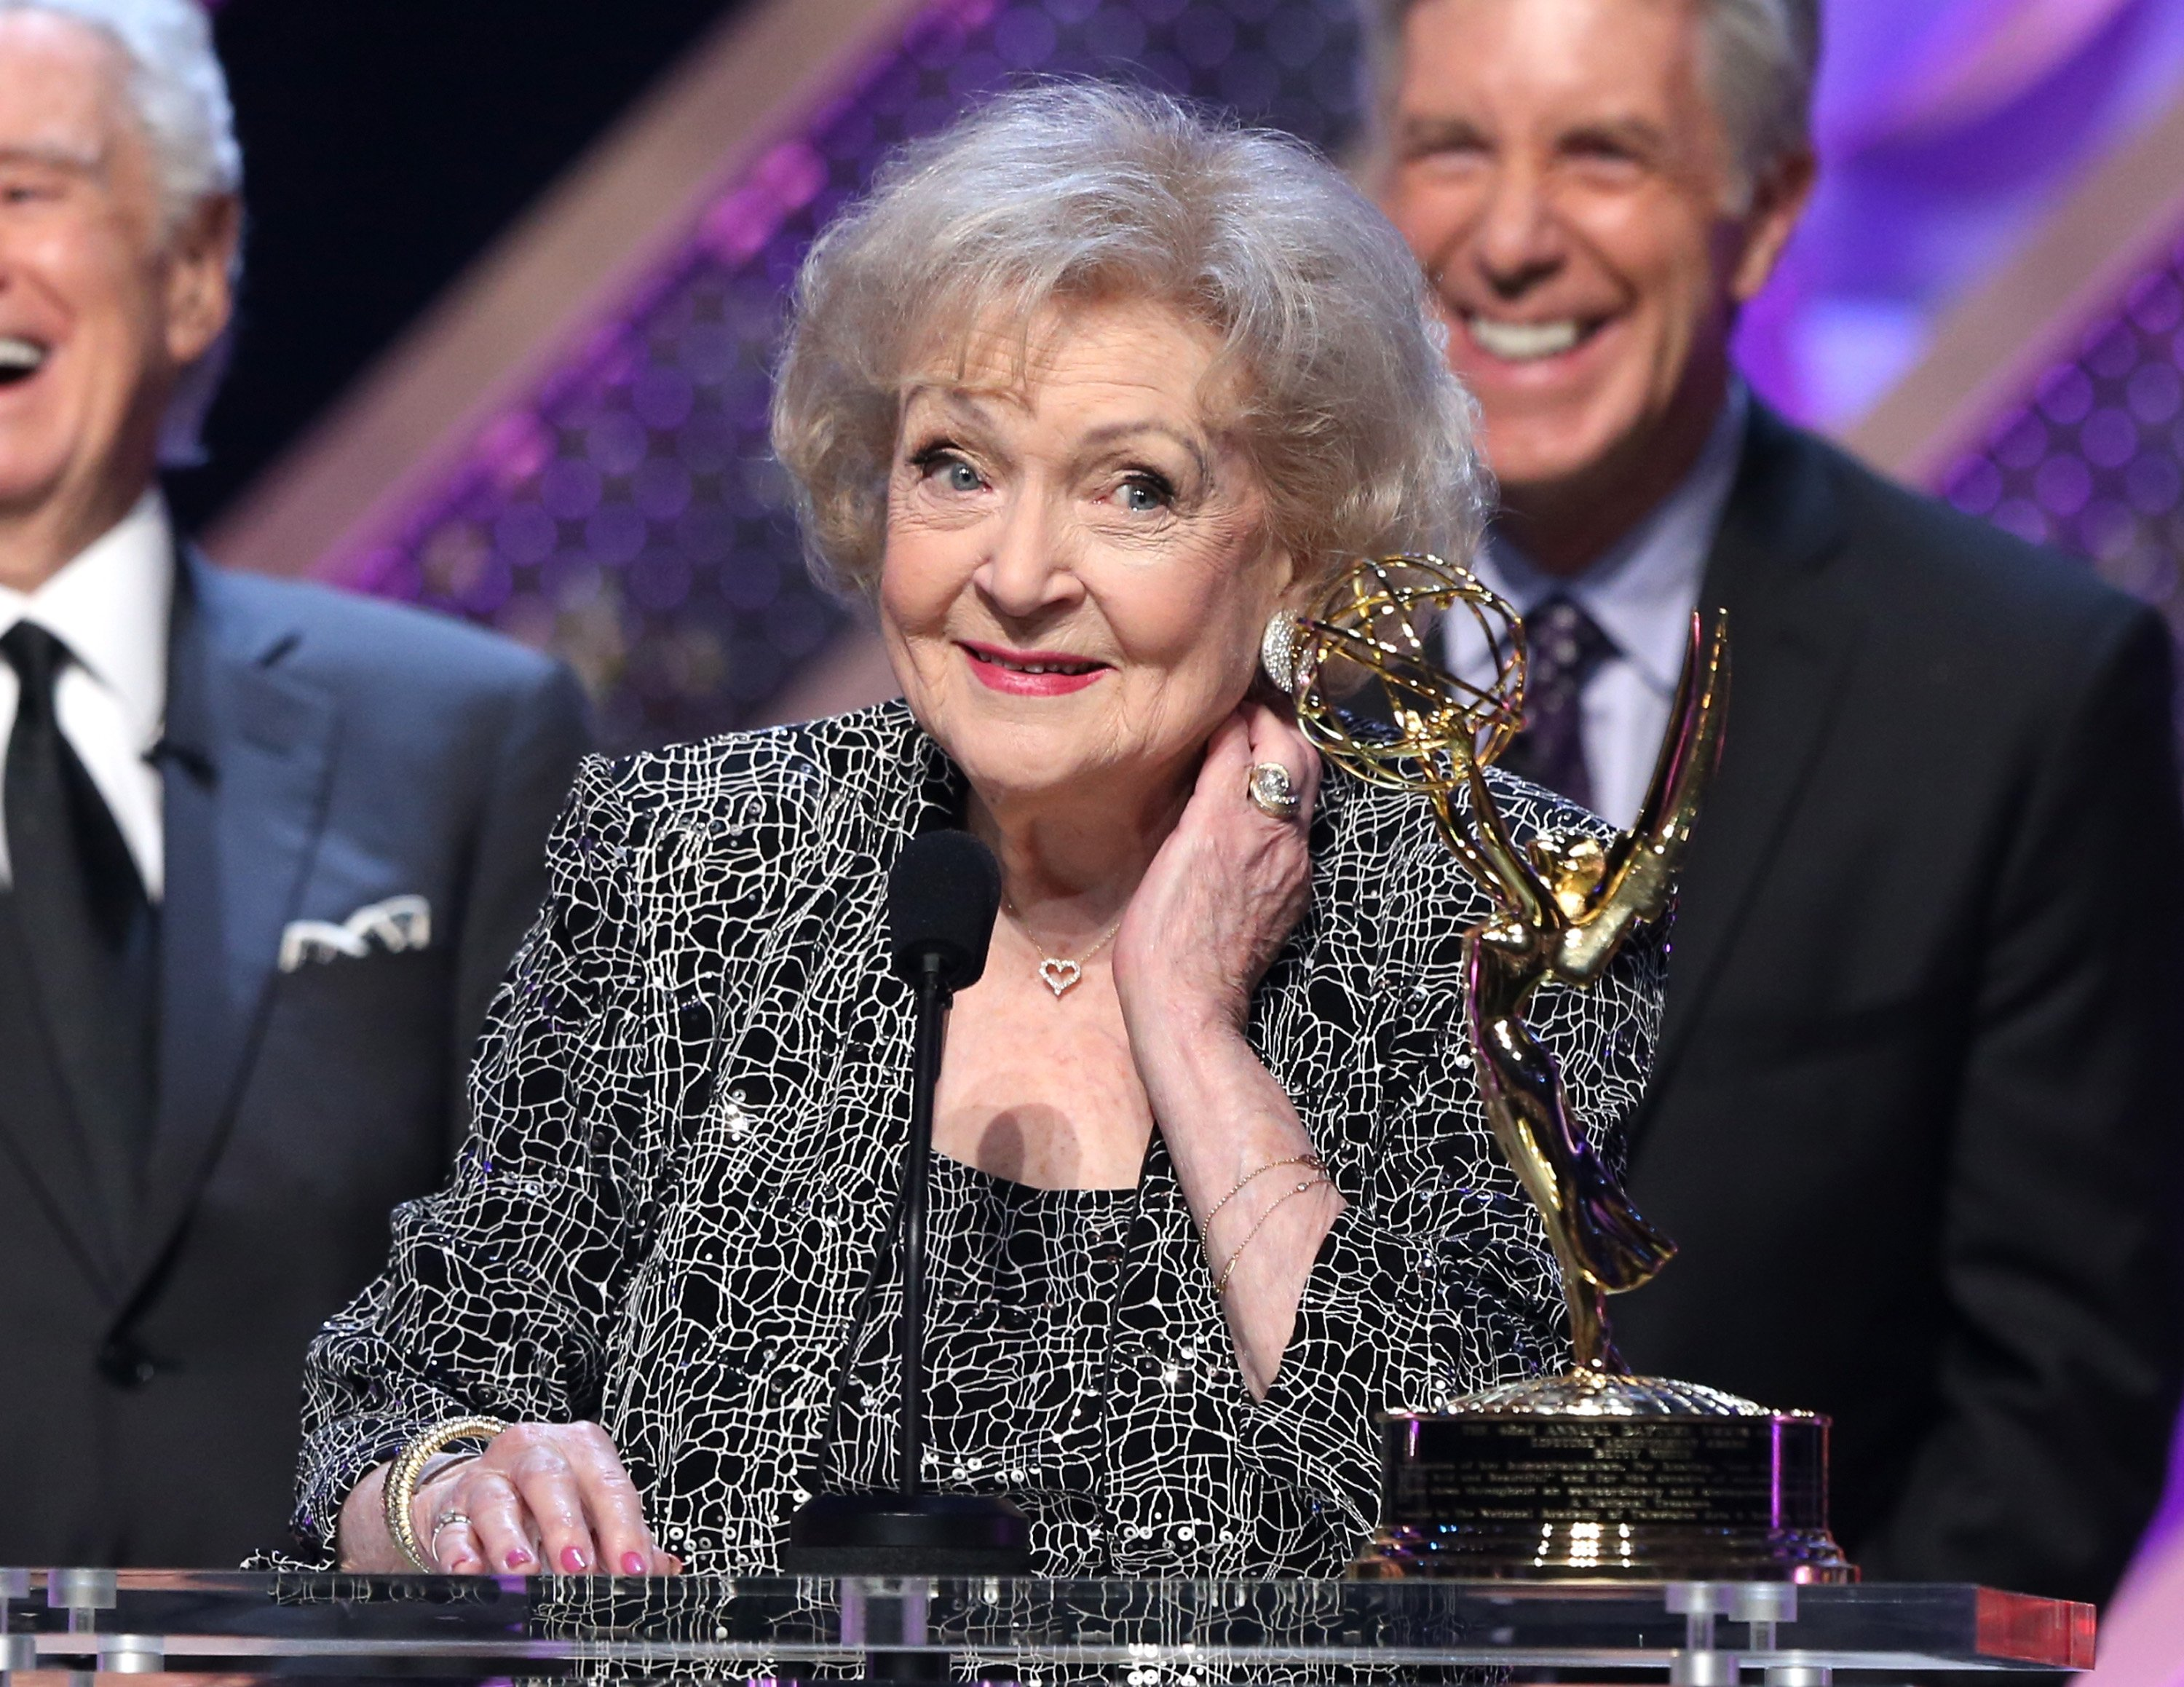 Betty White at the 42nd Annual Daytime Emmy Awards on April 26, 2015 | Photo: GettyImages